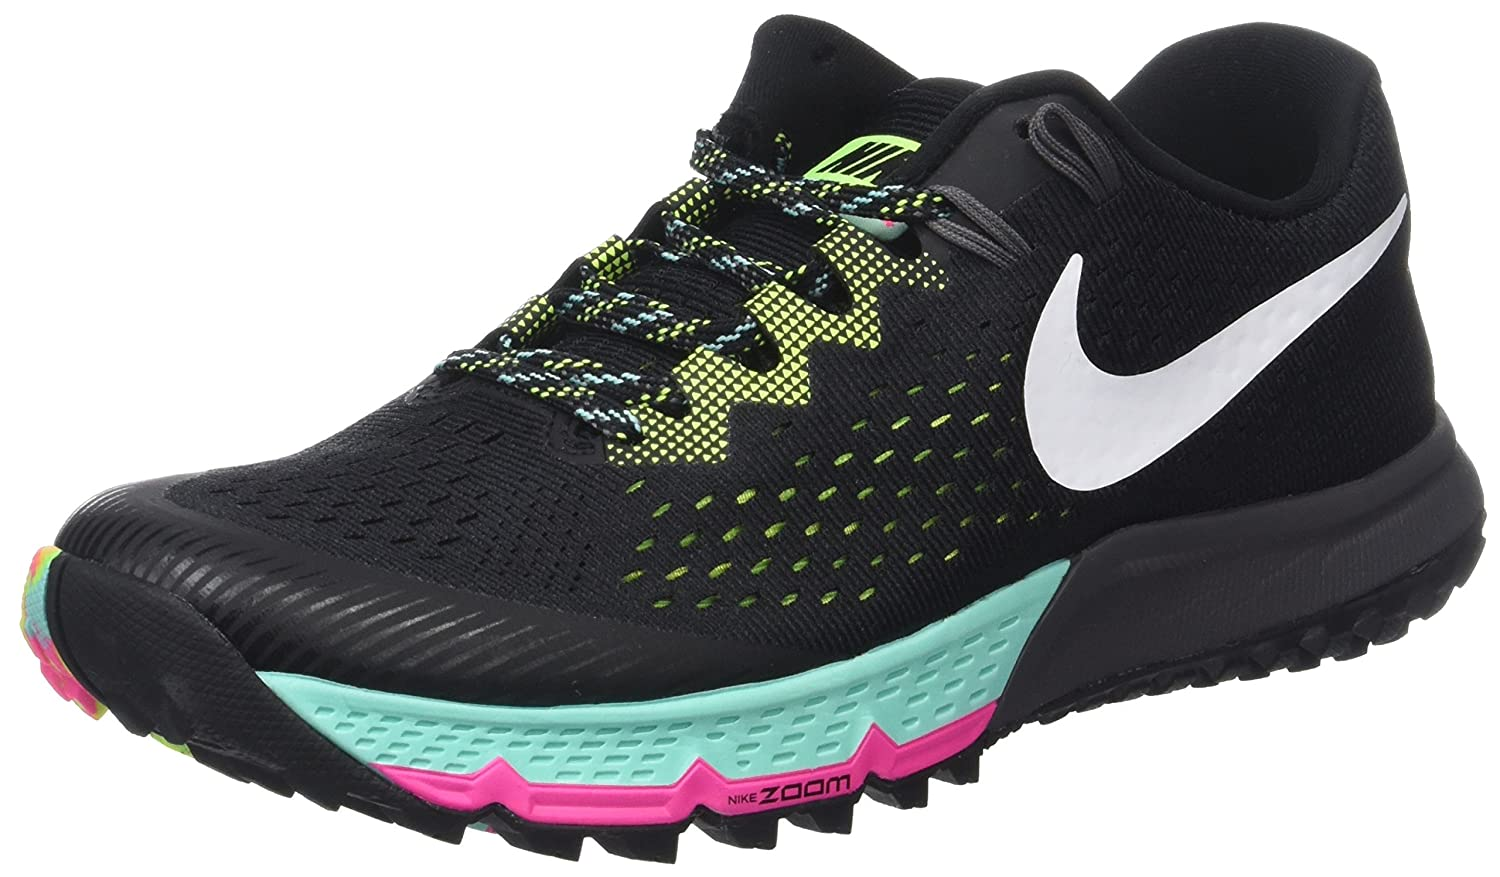 104ad22969bd NIKE AIR ZOOM TERRA KIGER 4 Women's Shoes, Multicolored (Black / White-Volt-Hyper  turquoise),7 UK(41 EU): Amazon.co.uk: Clothing